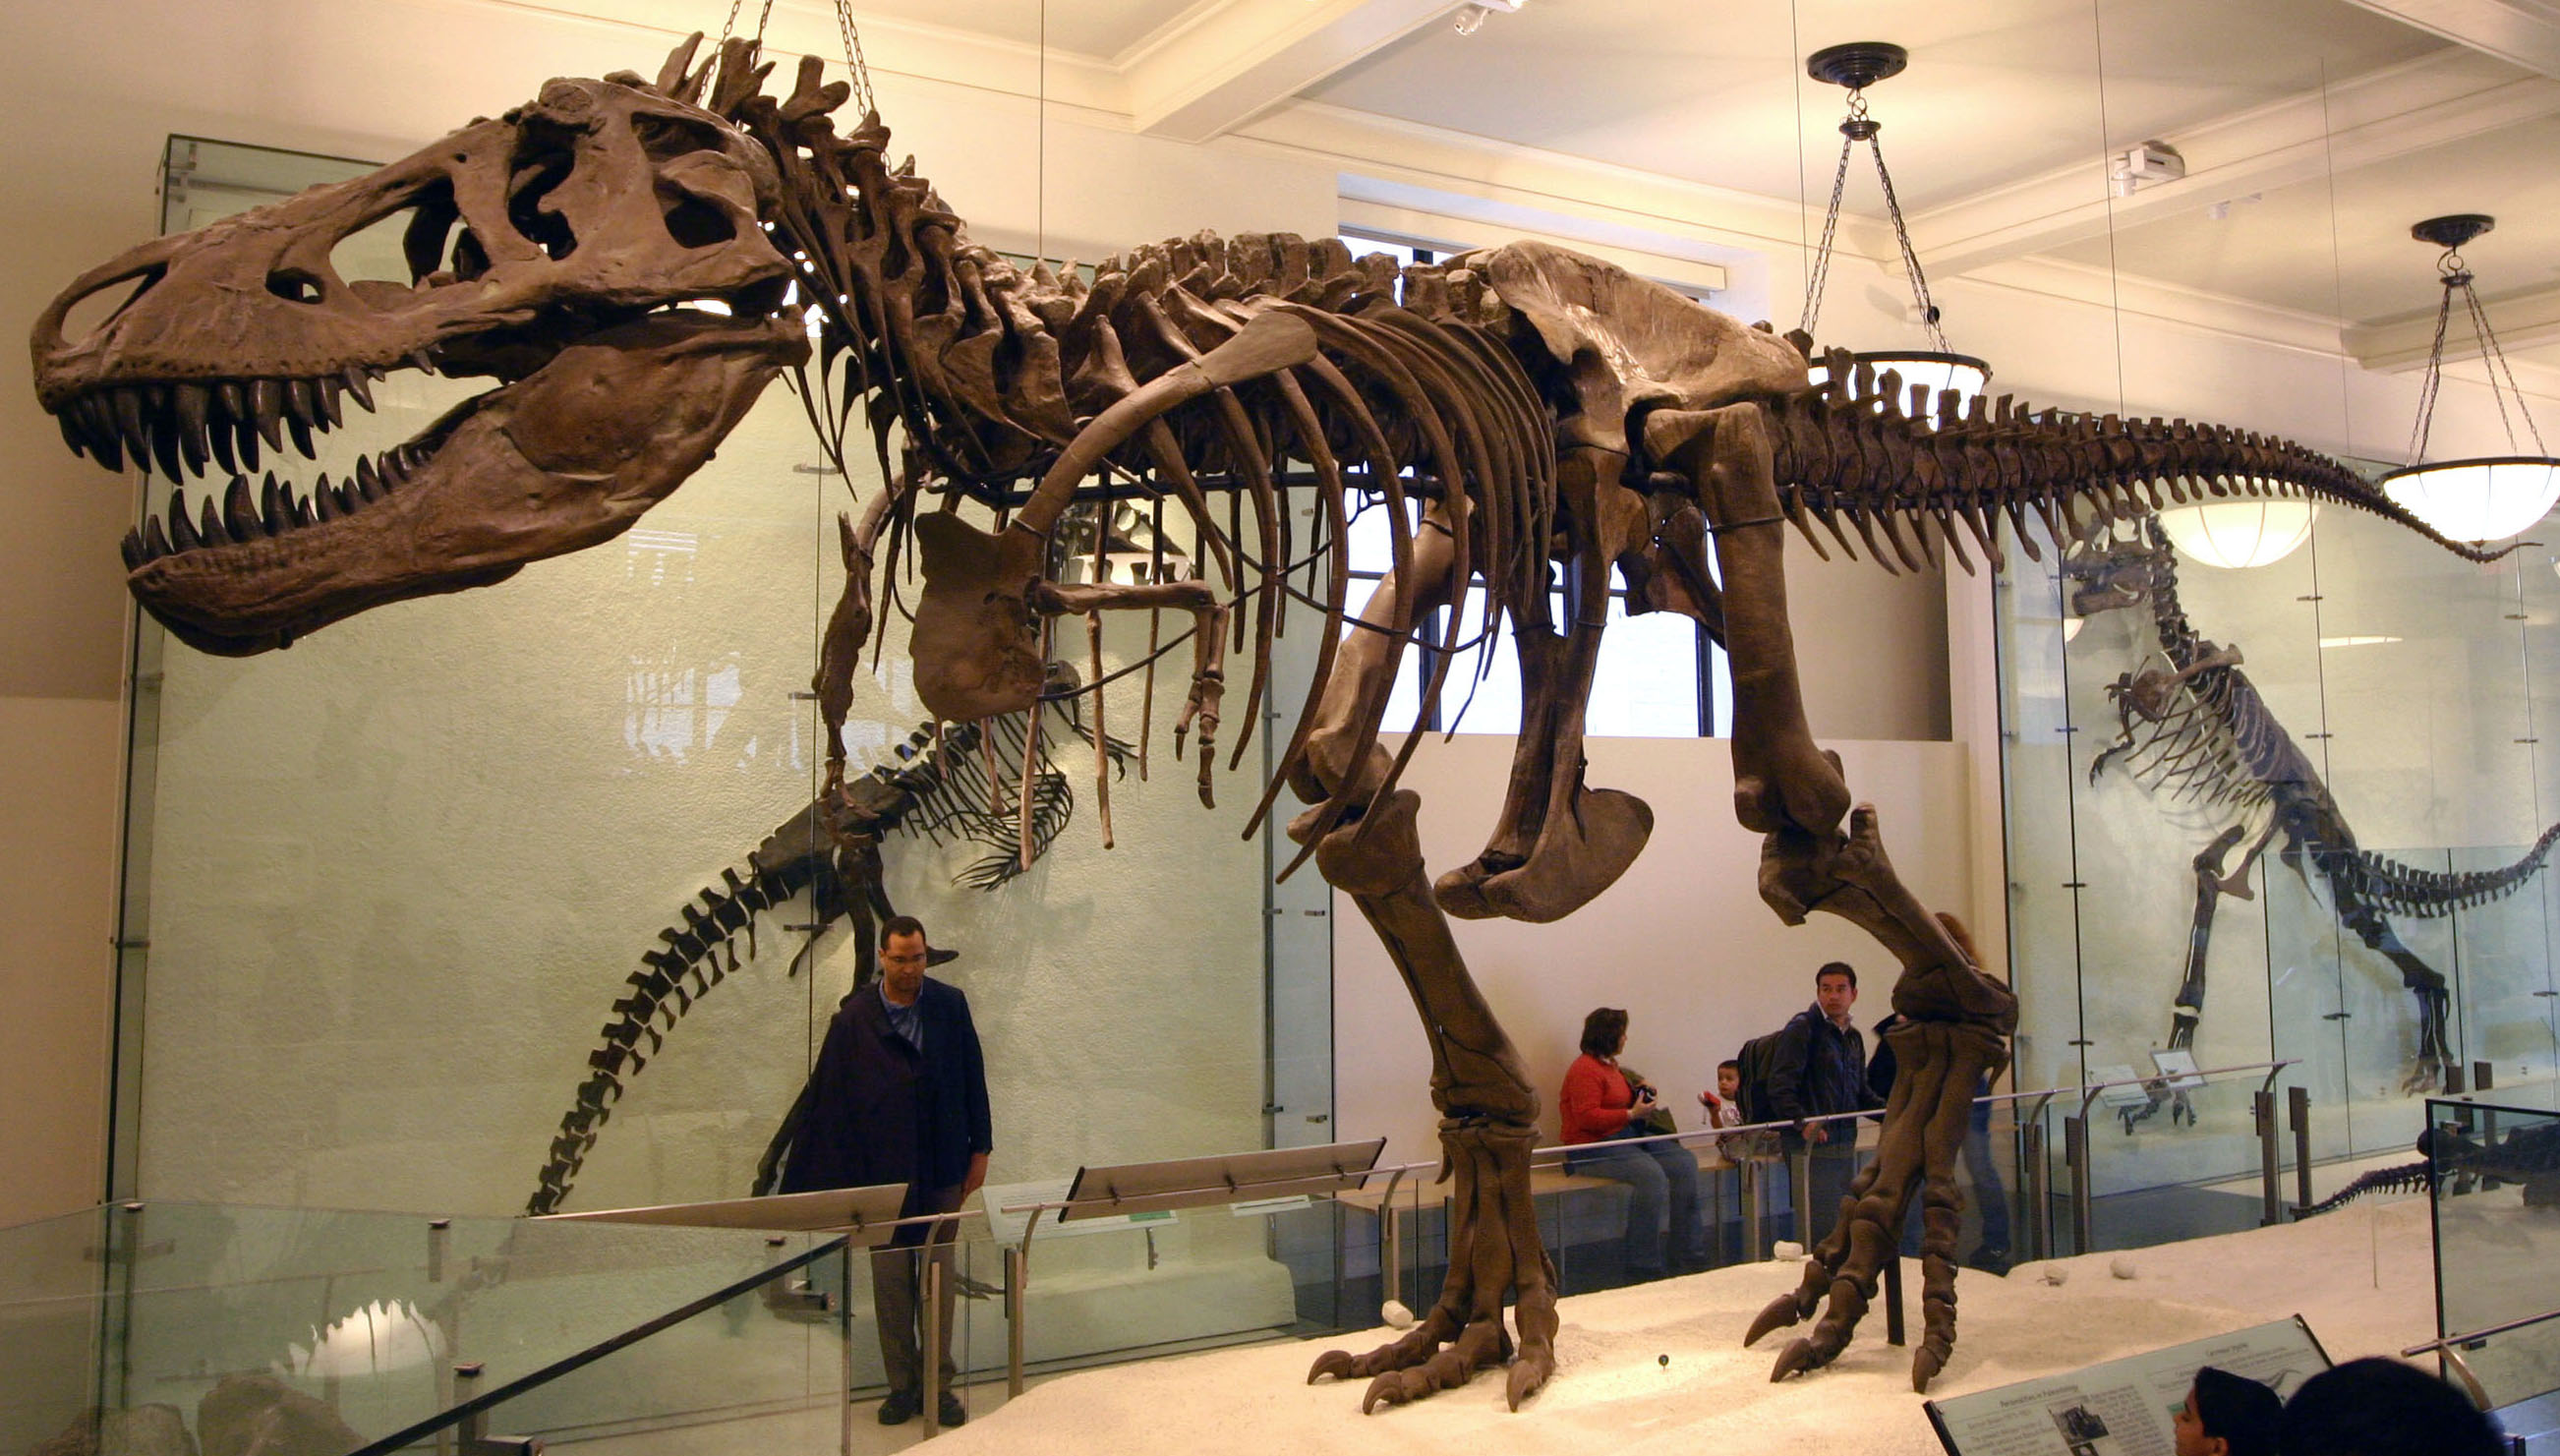 https://upload.wikimedia.org/wikipedia/commons/b/b4/T-Rex.jpg